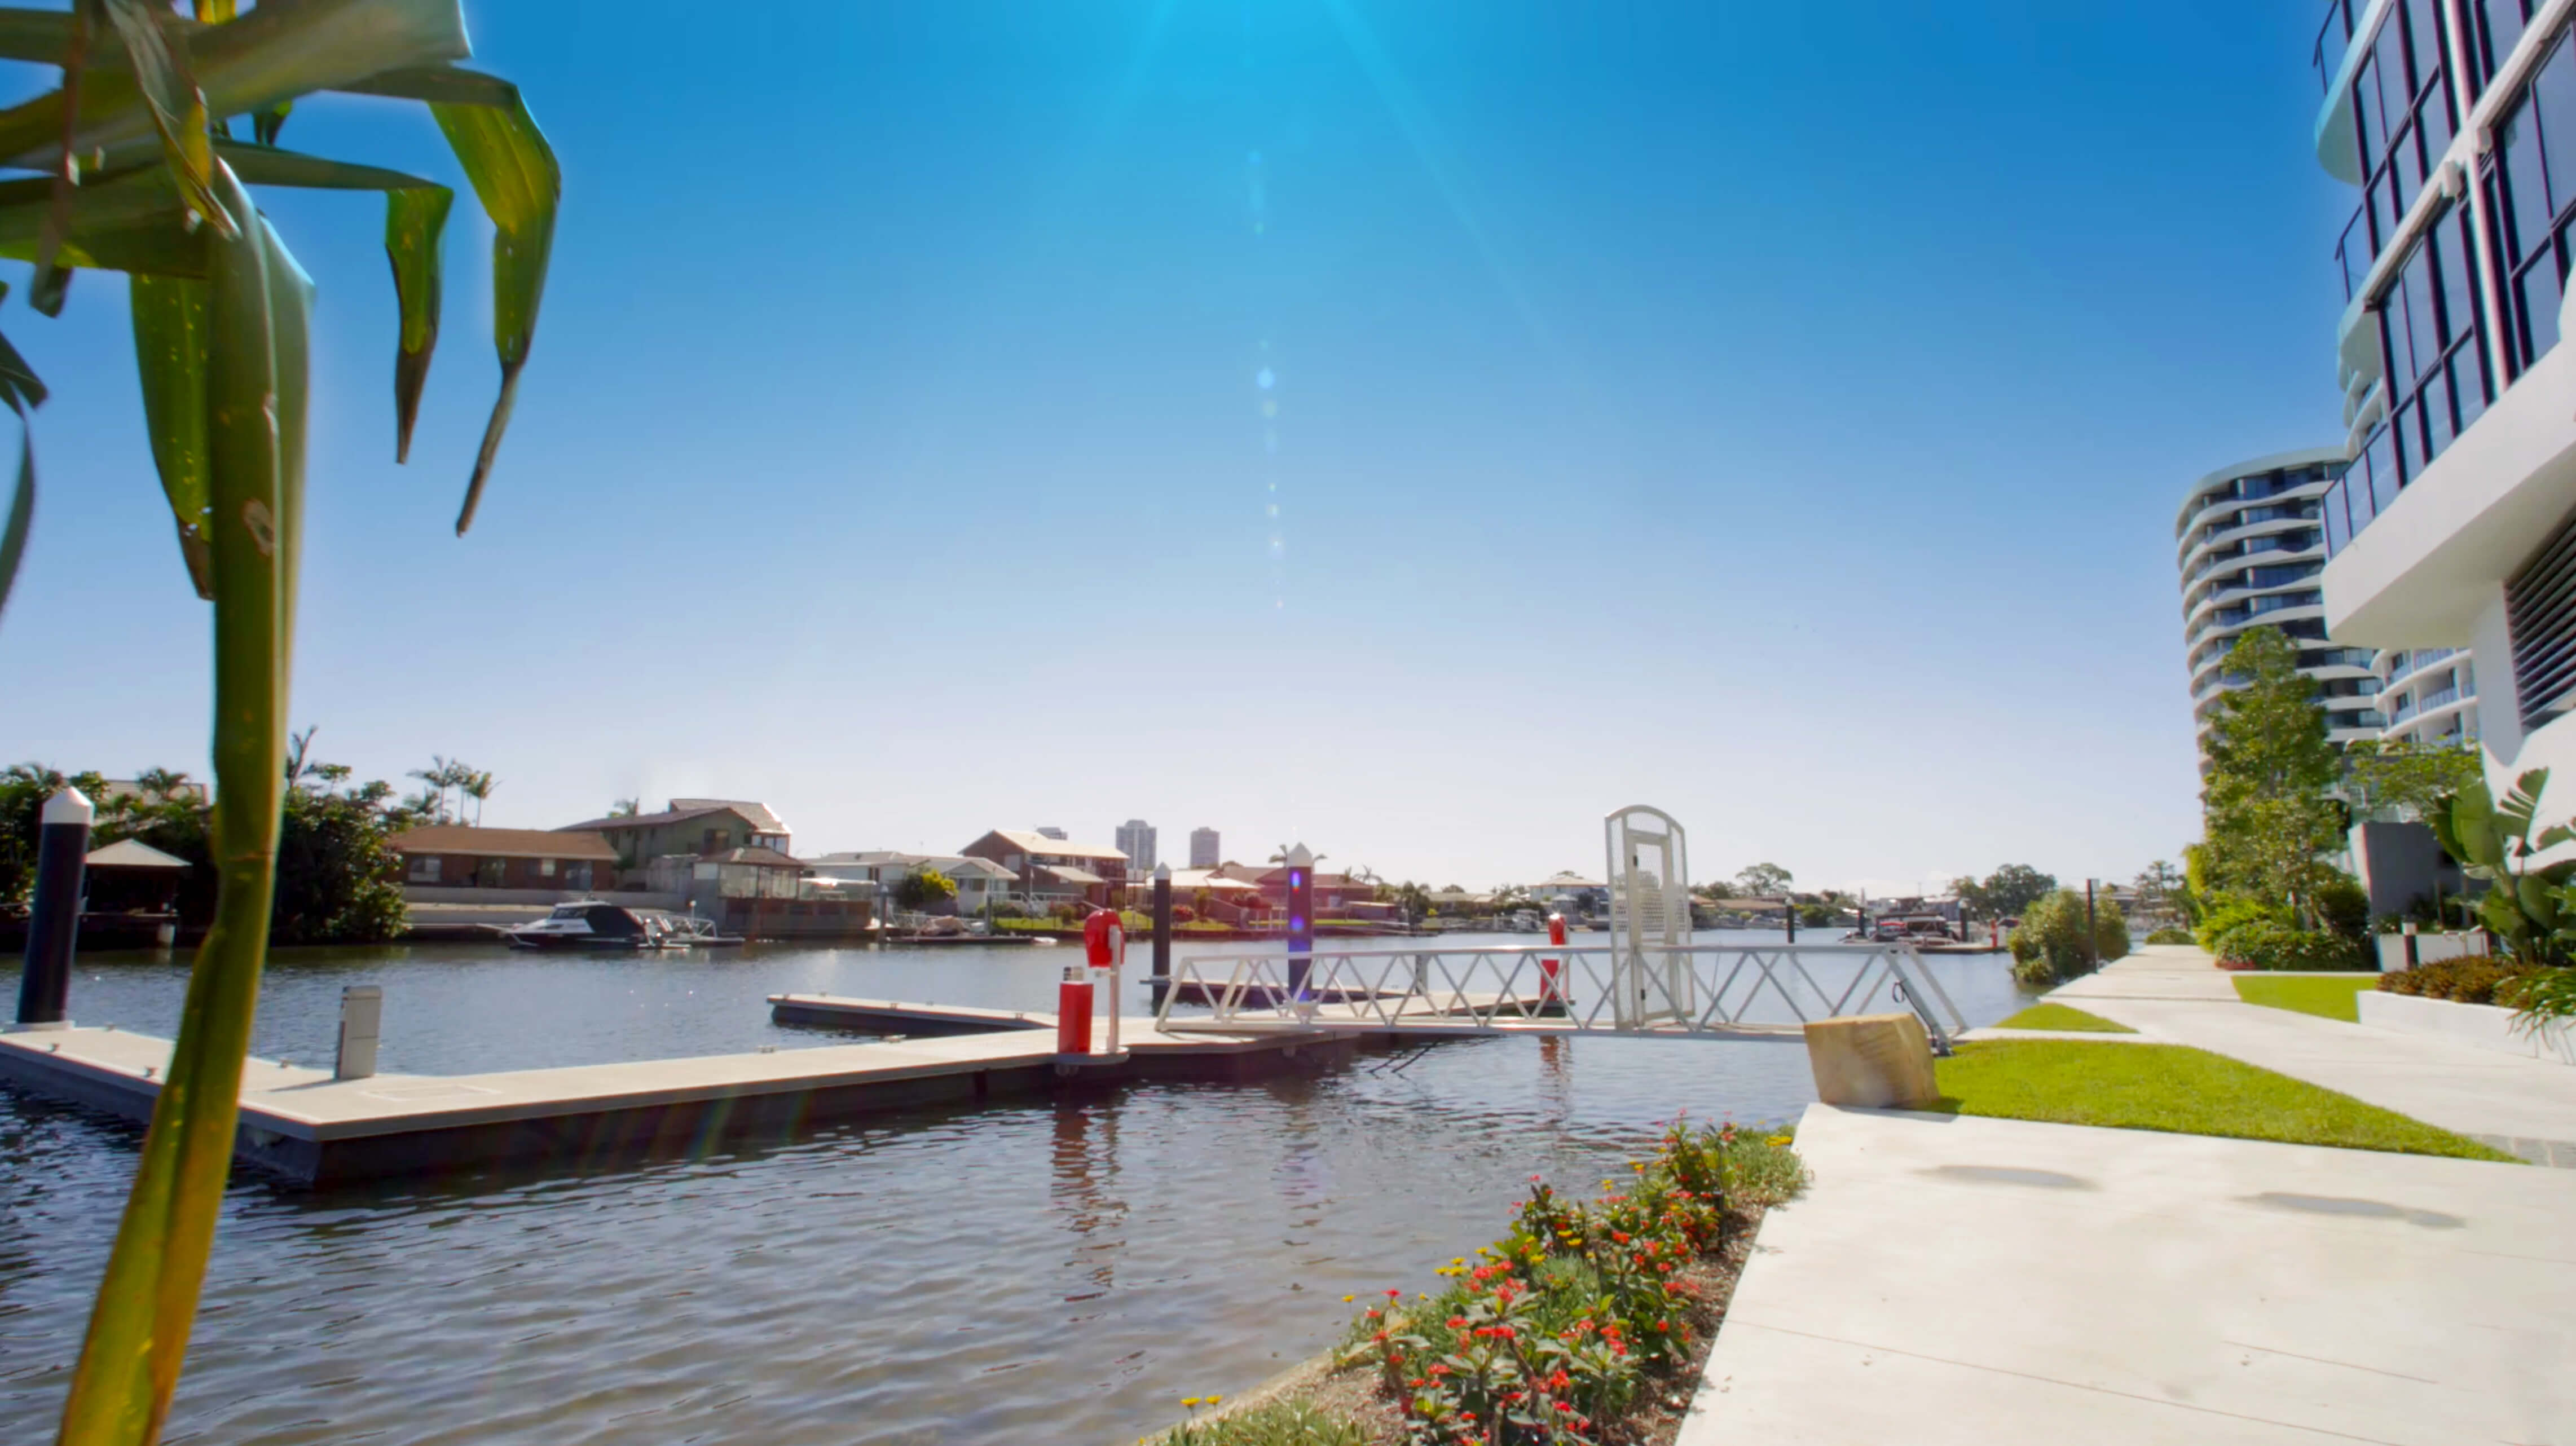 Marina Berth - Located directly on the water, out the front of your apartment complex. Walk straight from your apartment and climb aboard your boat to discover everything the Broadwater and Gold Coast waterways have to offer.